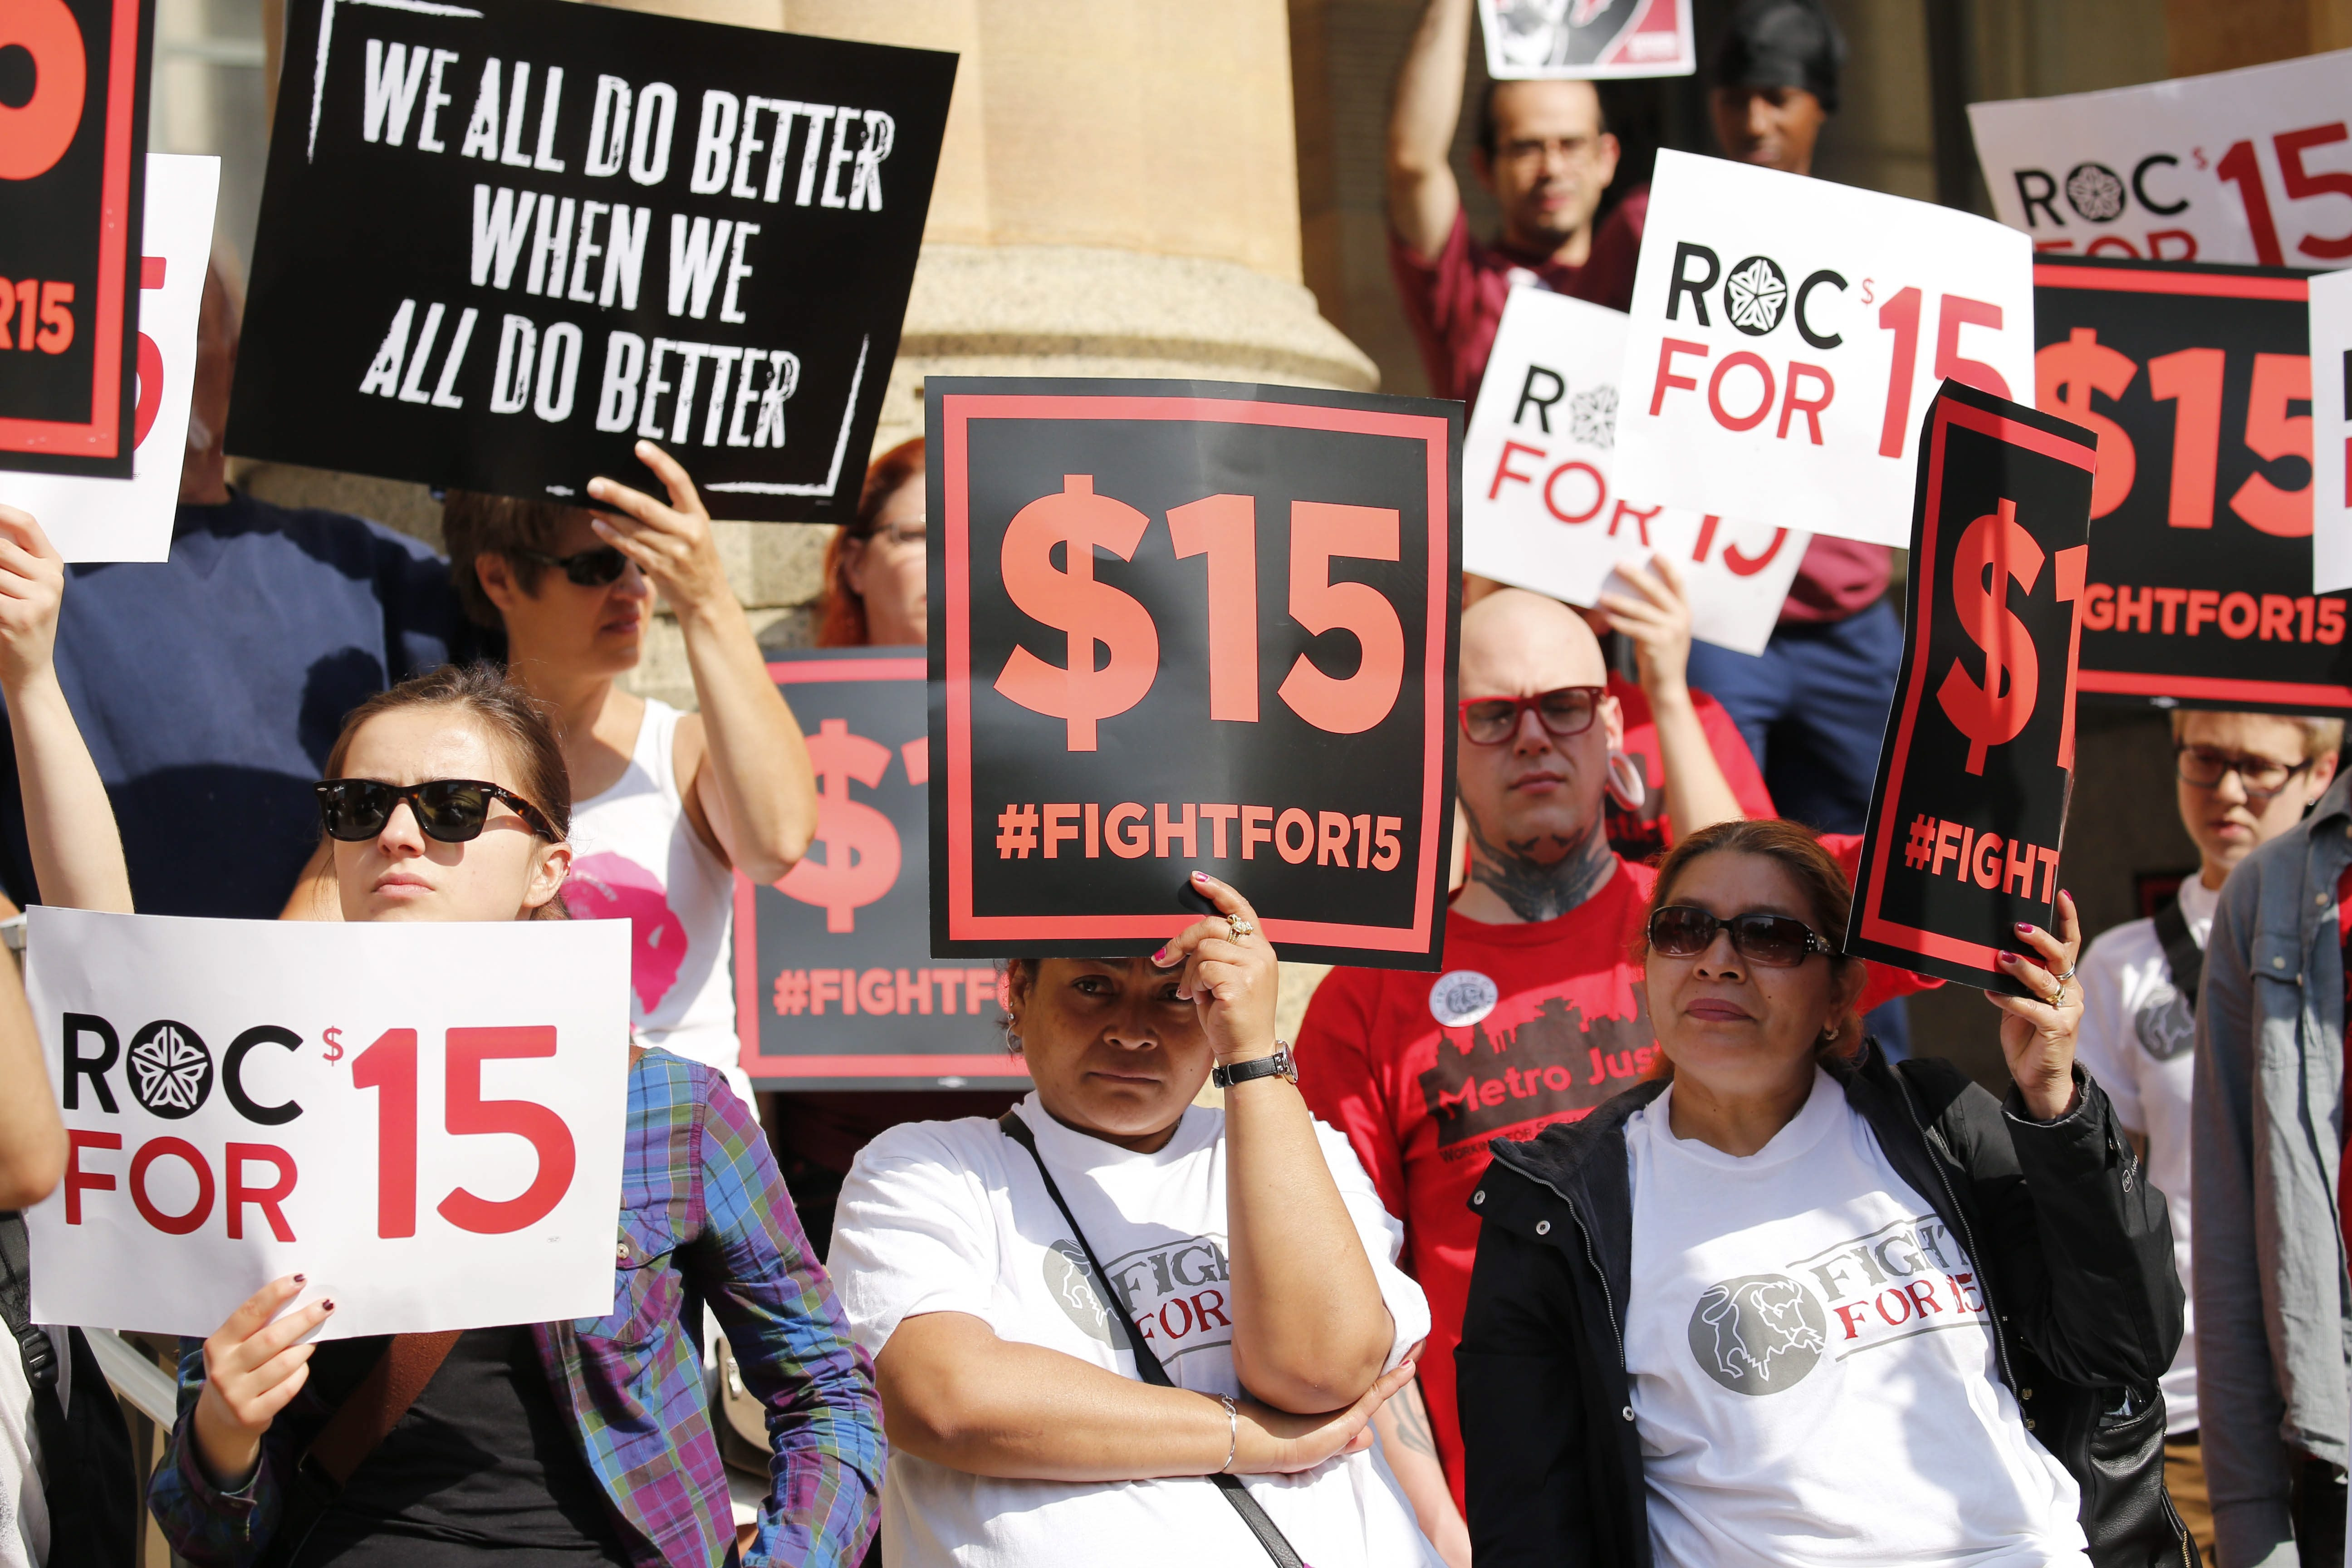 Protesters gather outside Buffalo City Hall to call for a $15 an hour minimum wage before a hearing of the governor's wage board on June 5, 2015. (Derek Gee/News file photo)